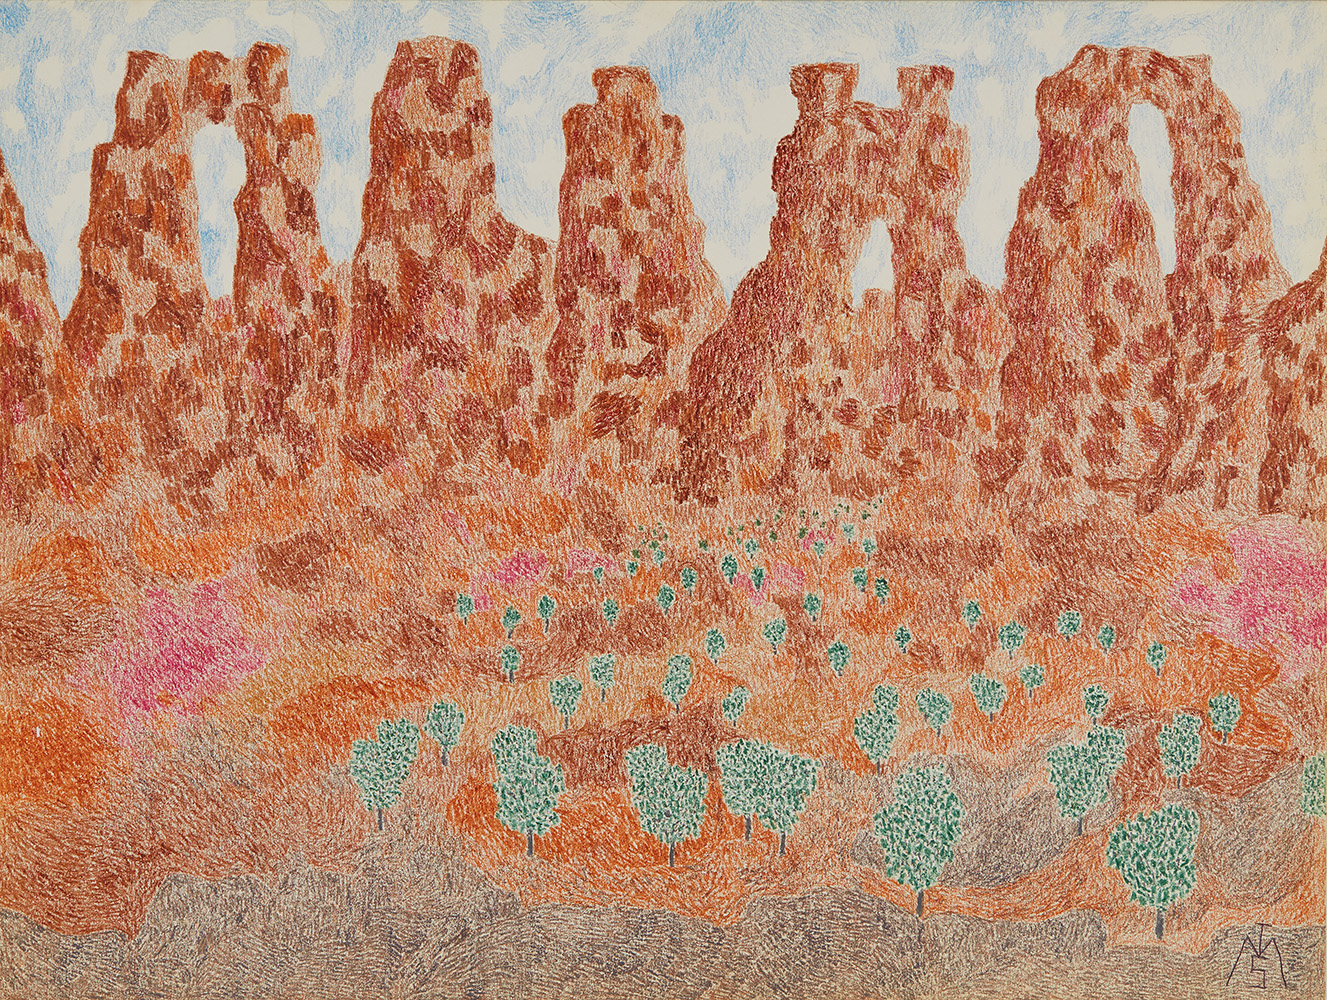 Matthew I Smith    Untitled (Landscape)  , 1975 Crayon on paper 18 x 24 inches 45.7 x 61 cm MIS 92